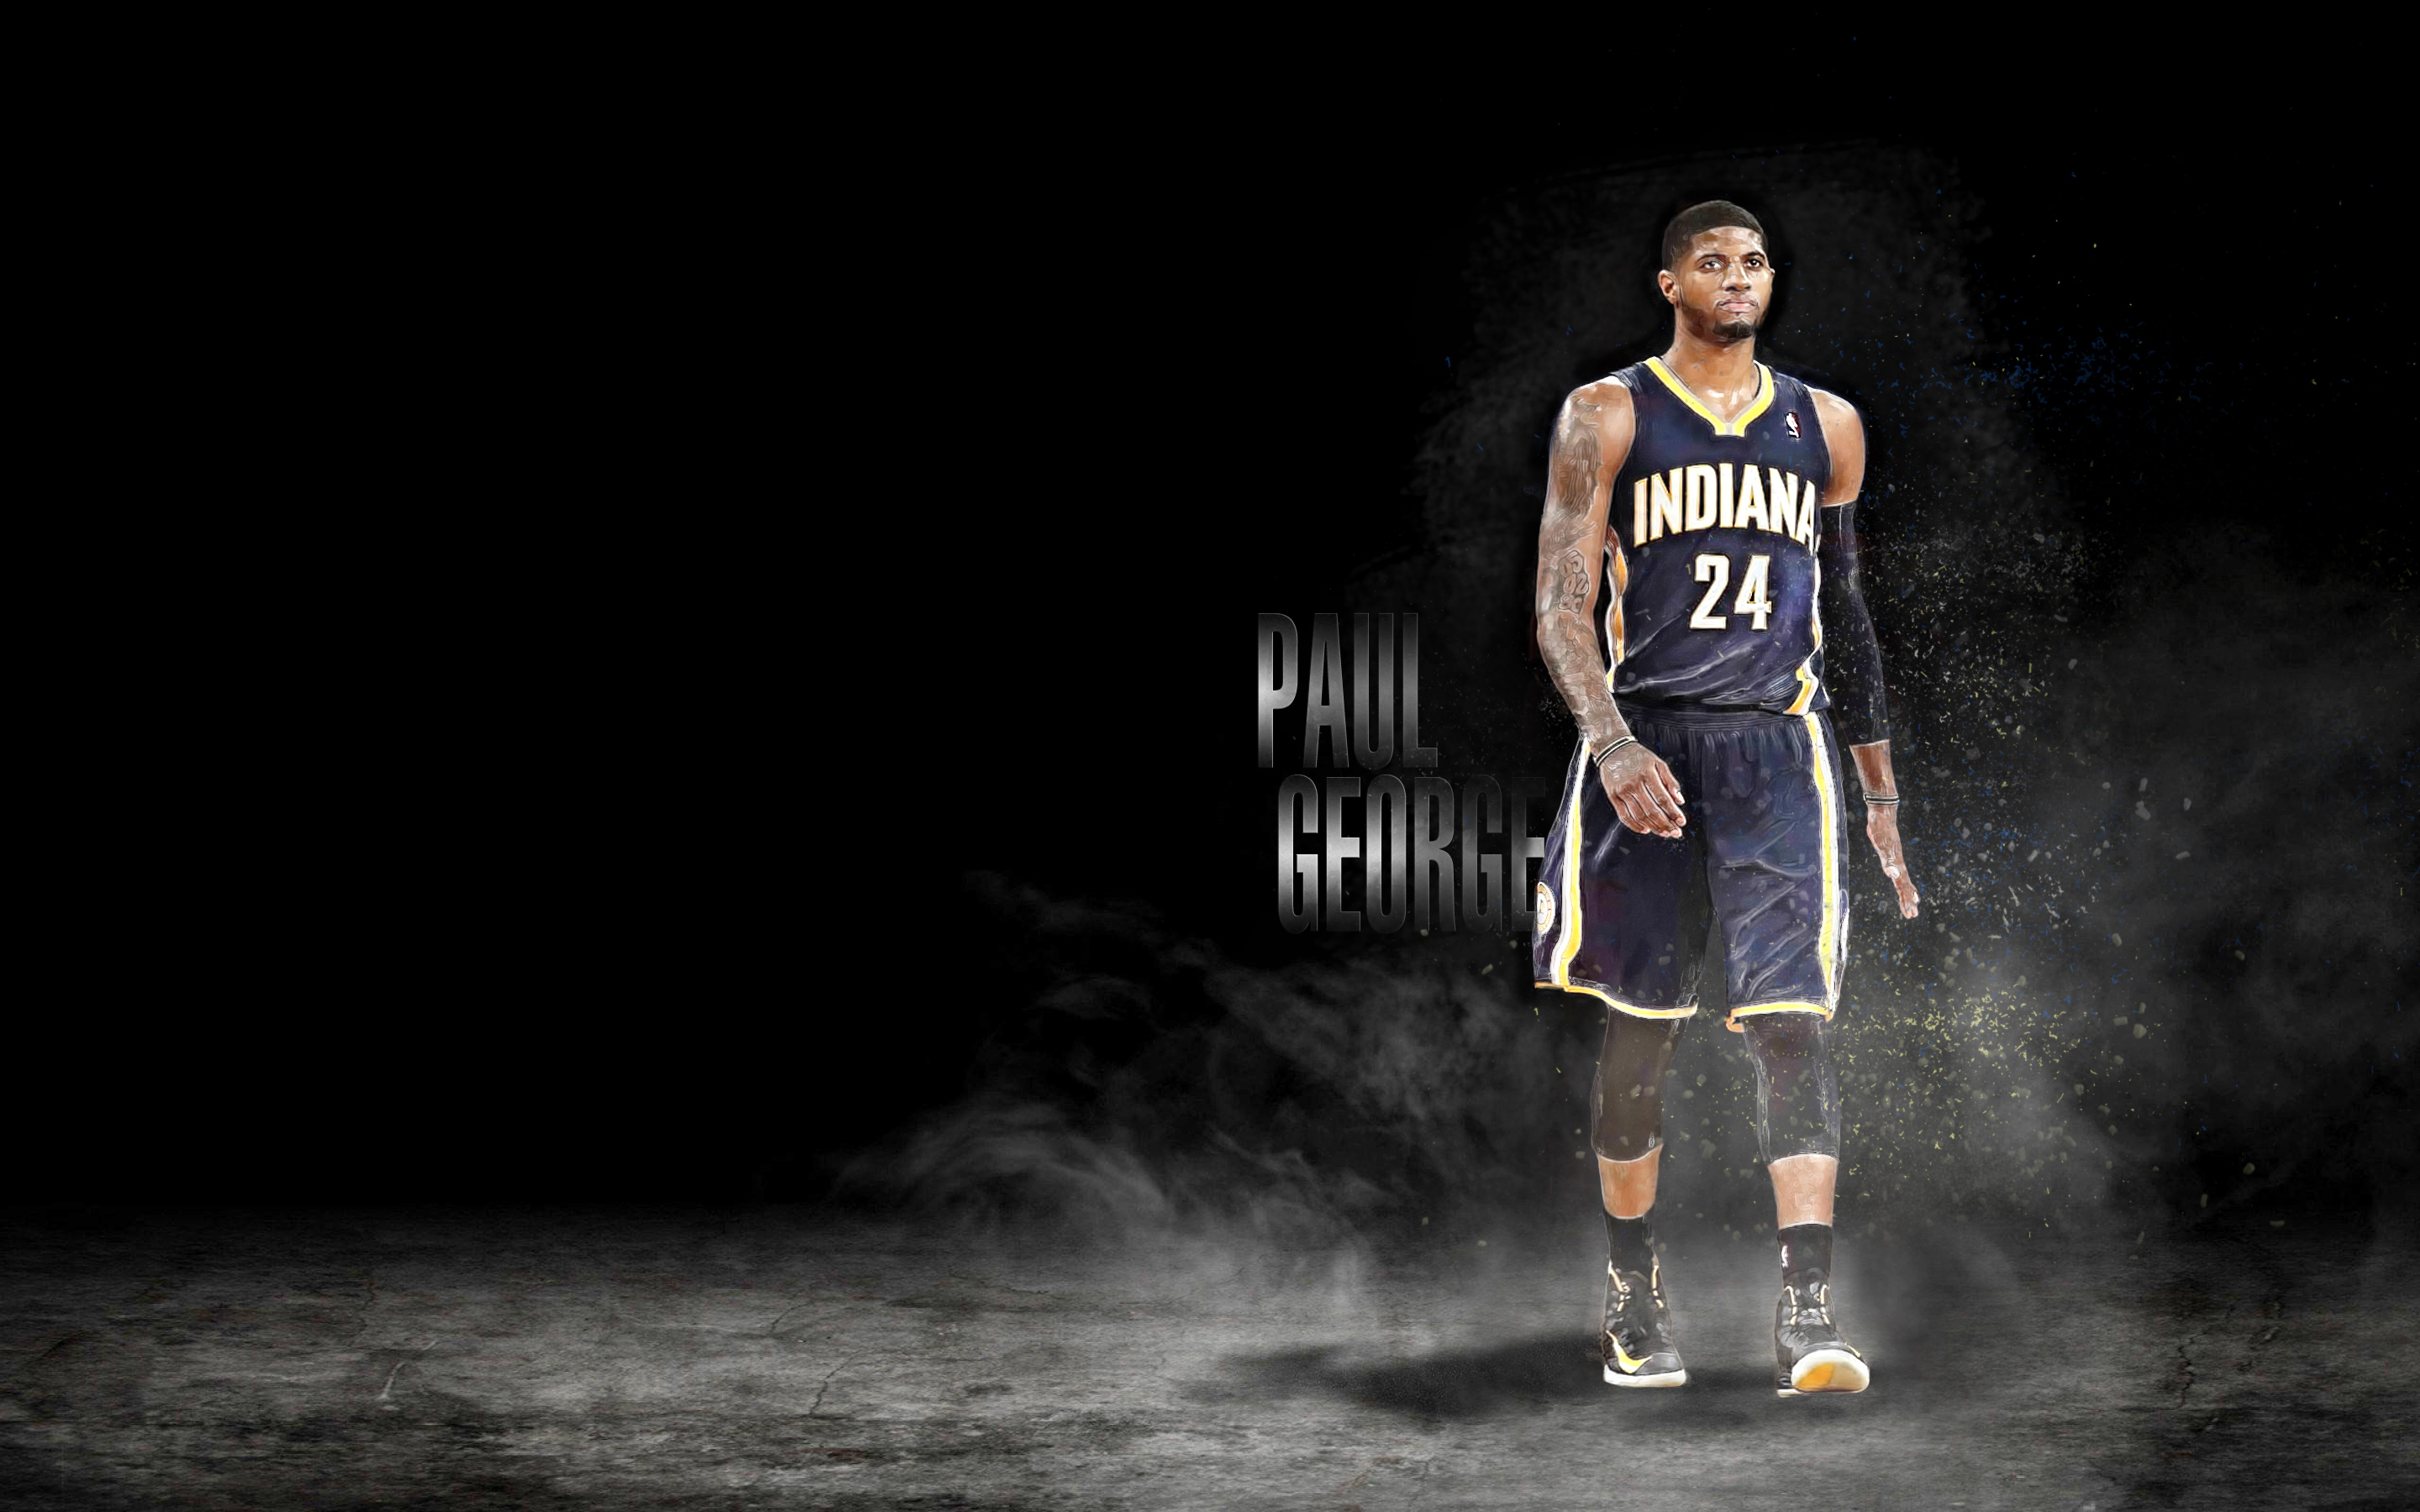 Paul george dunk wallpaper paul george dunk wallpaper paul george dunk on birdman voltagebd Image collections